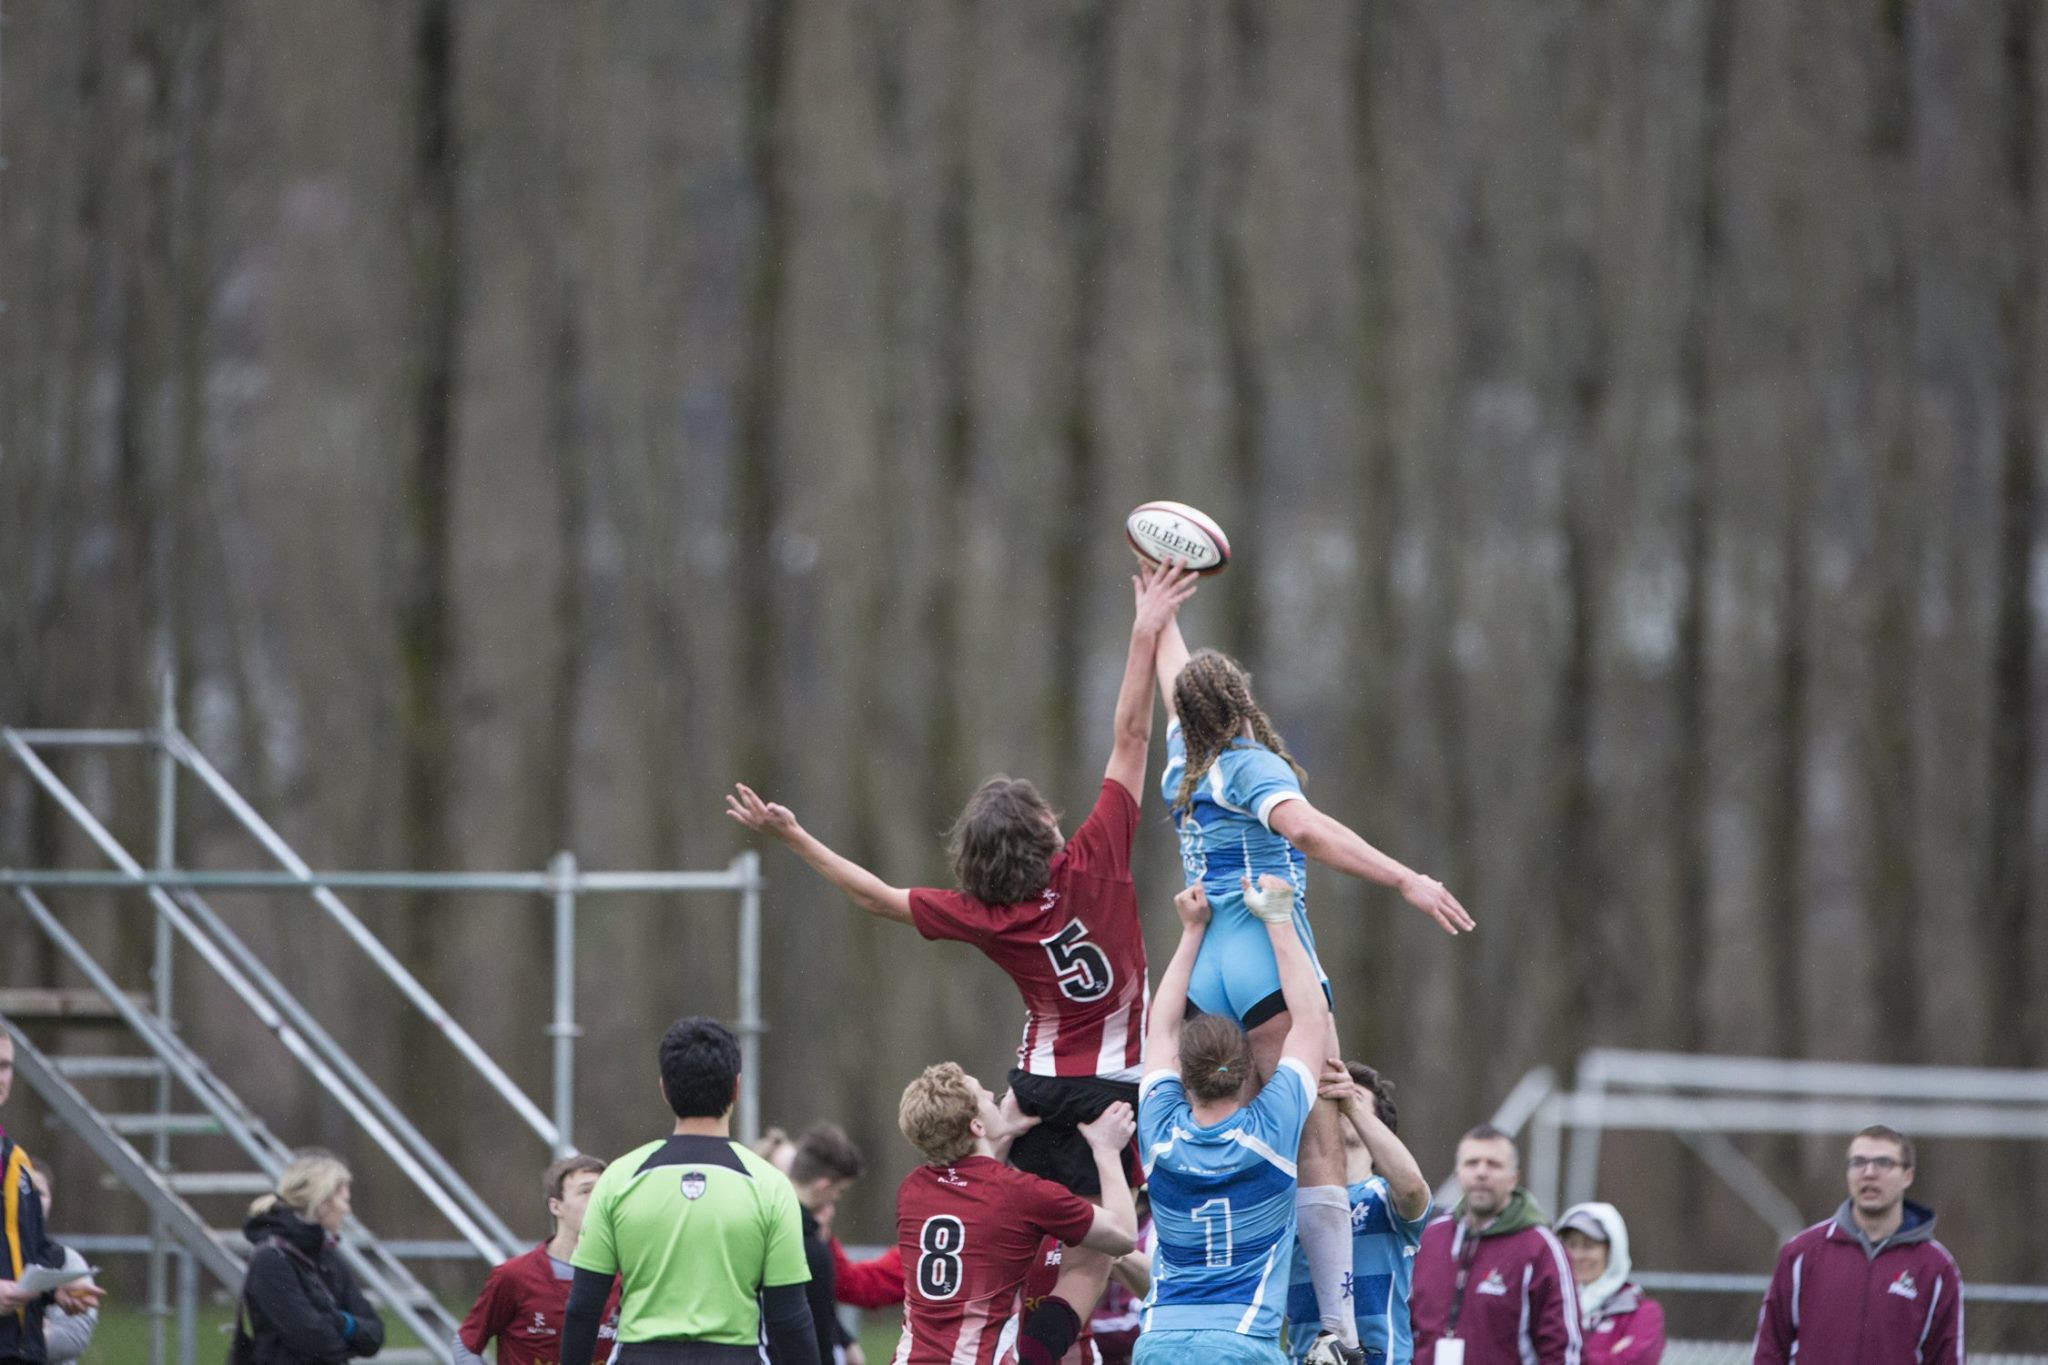 Women rugby players competing